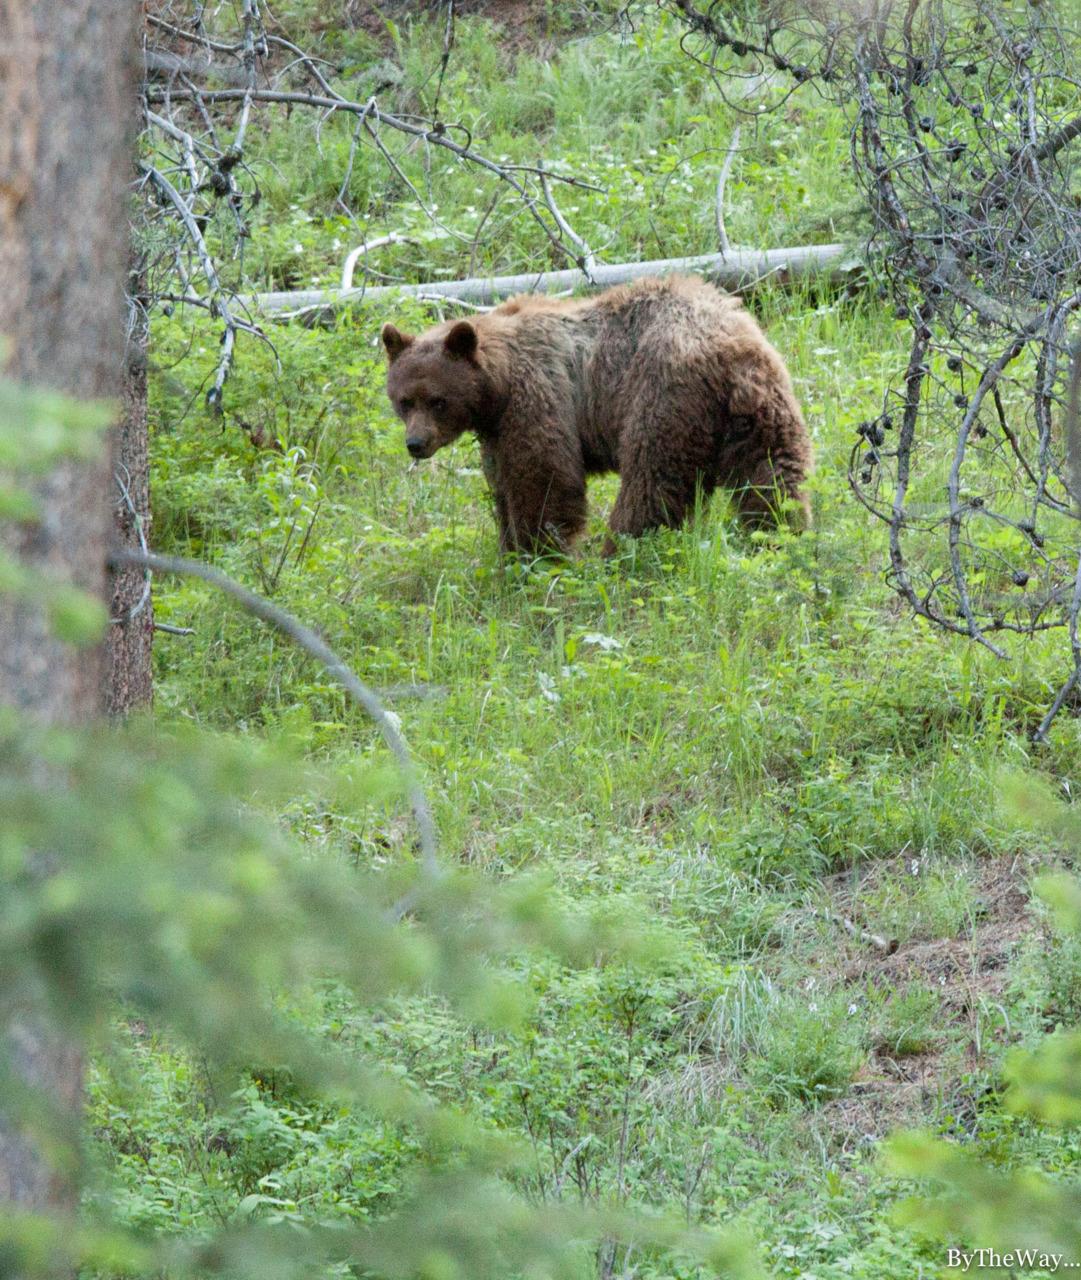 Grizzly bear, Yellowstone National Park - USA